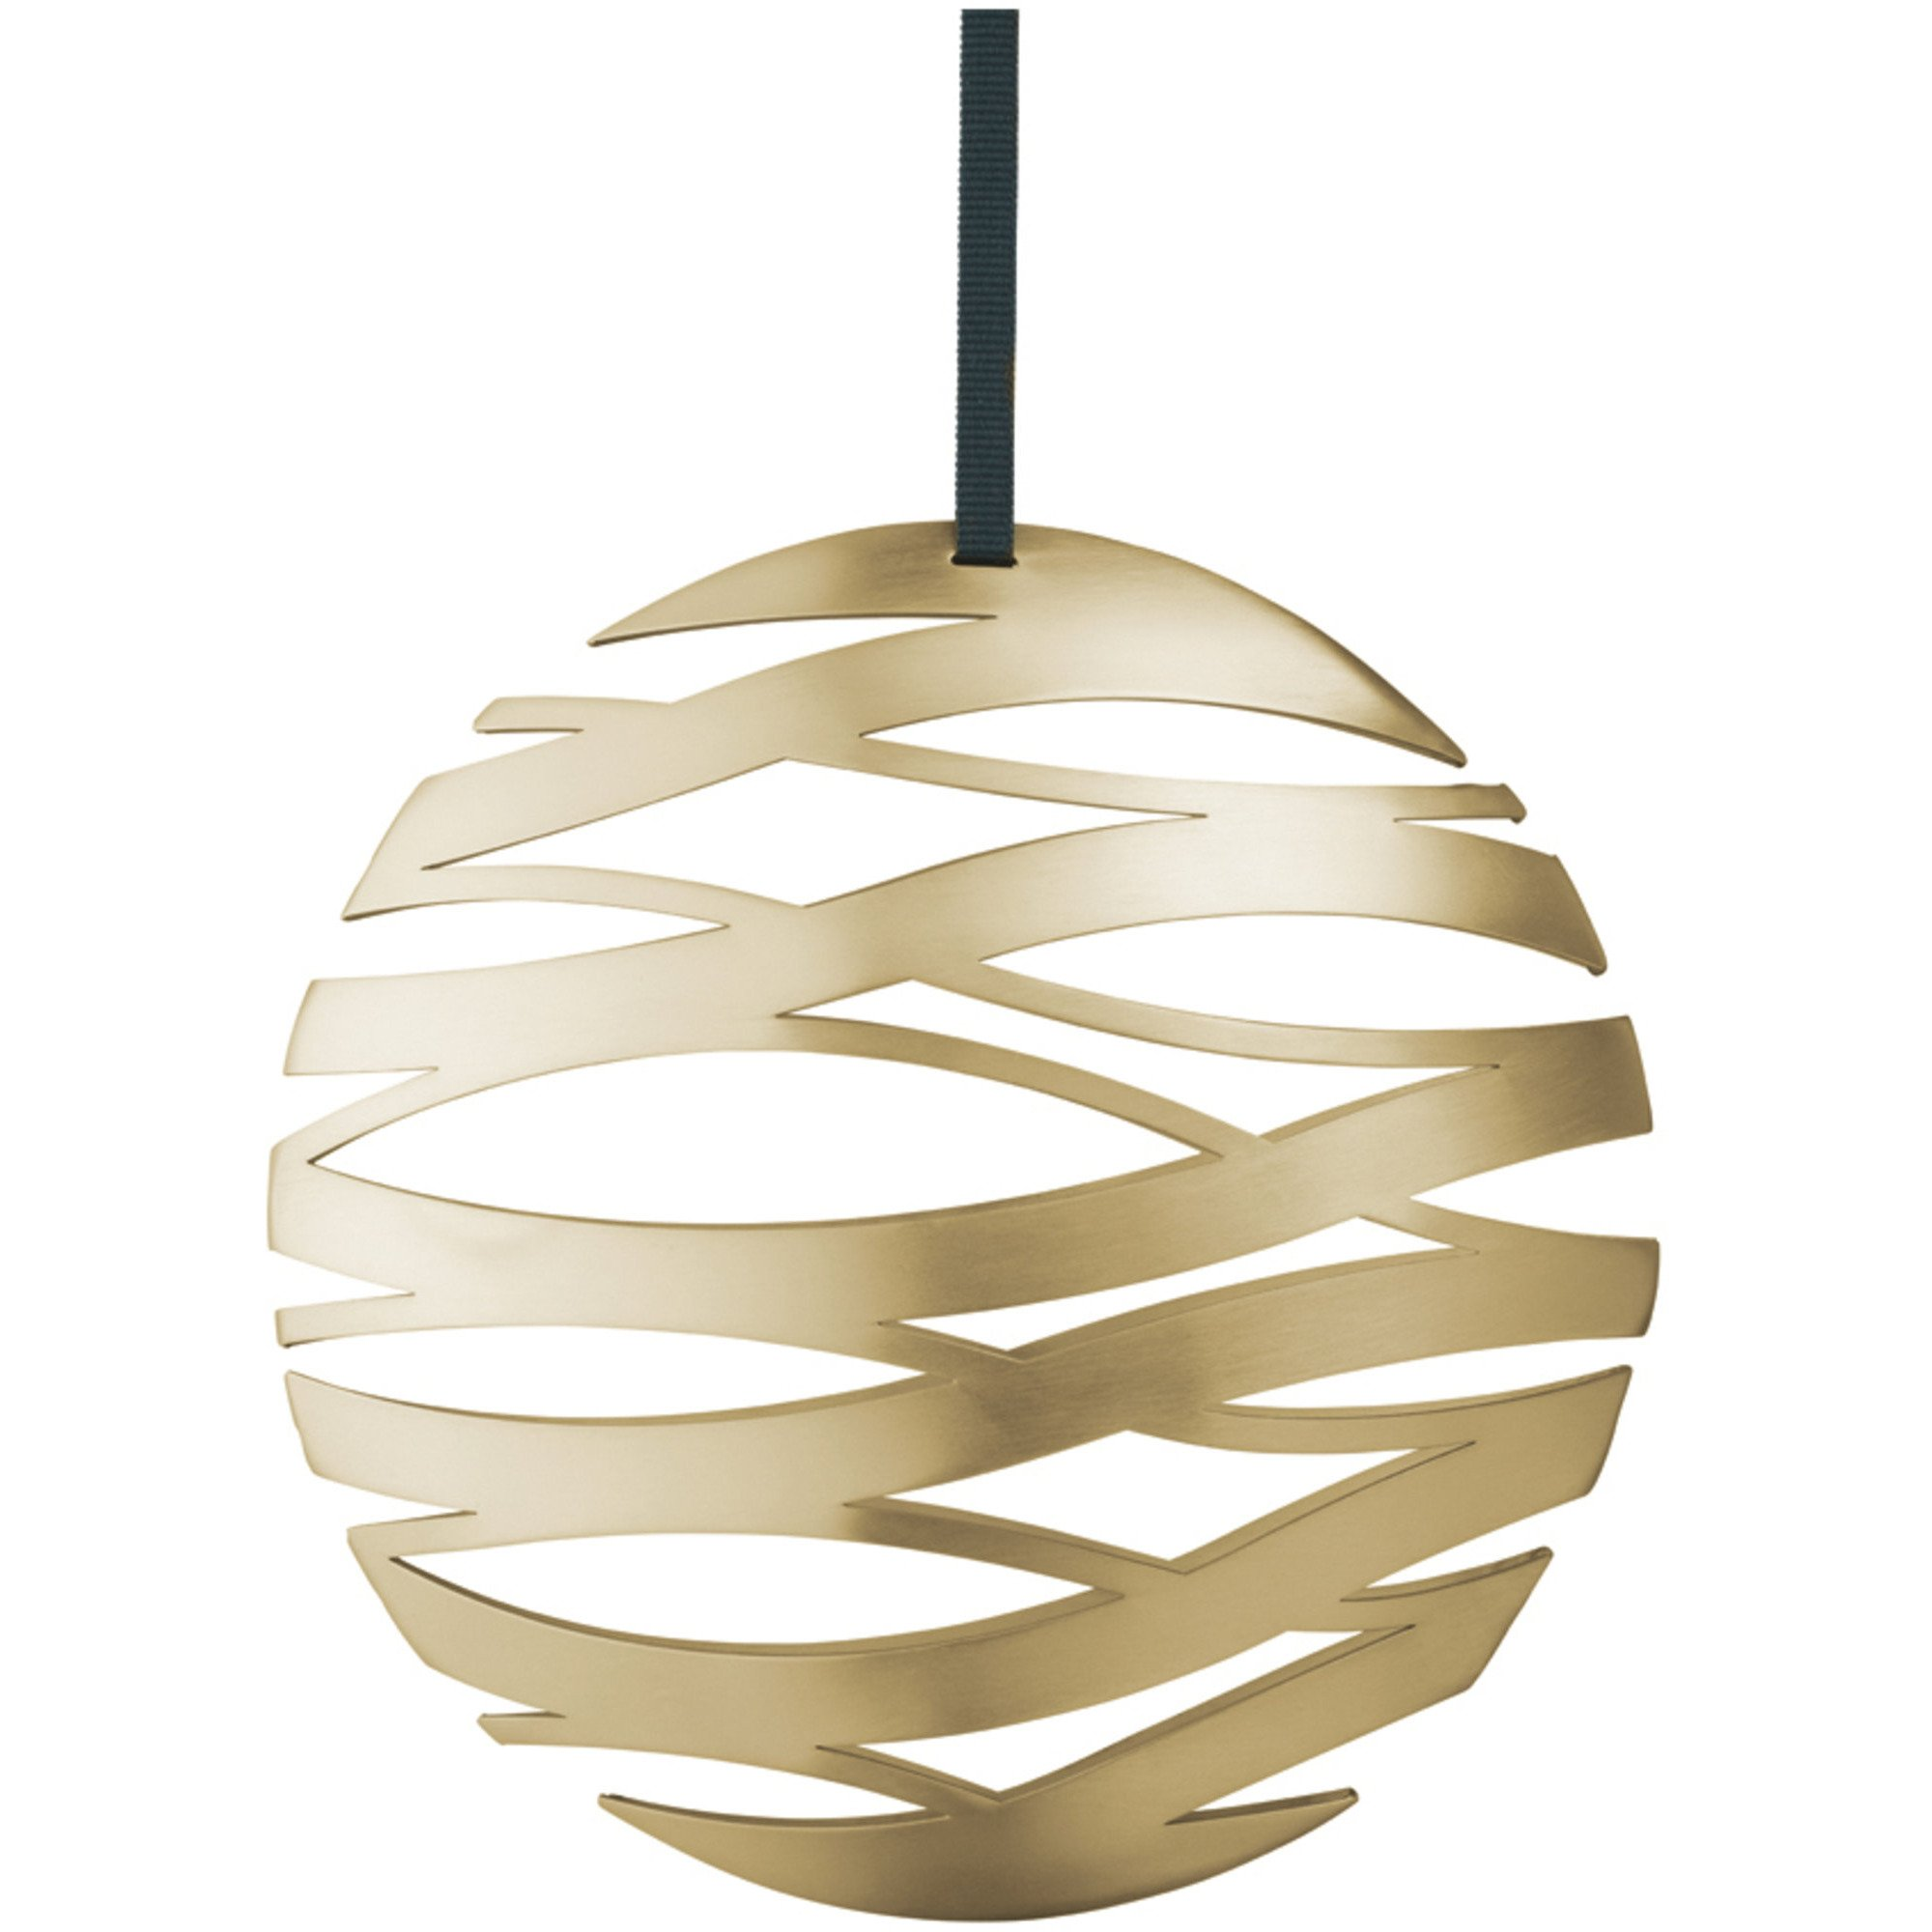 Stelton Tangle julornament boll, stor - mässing